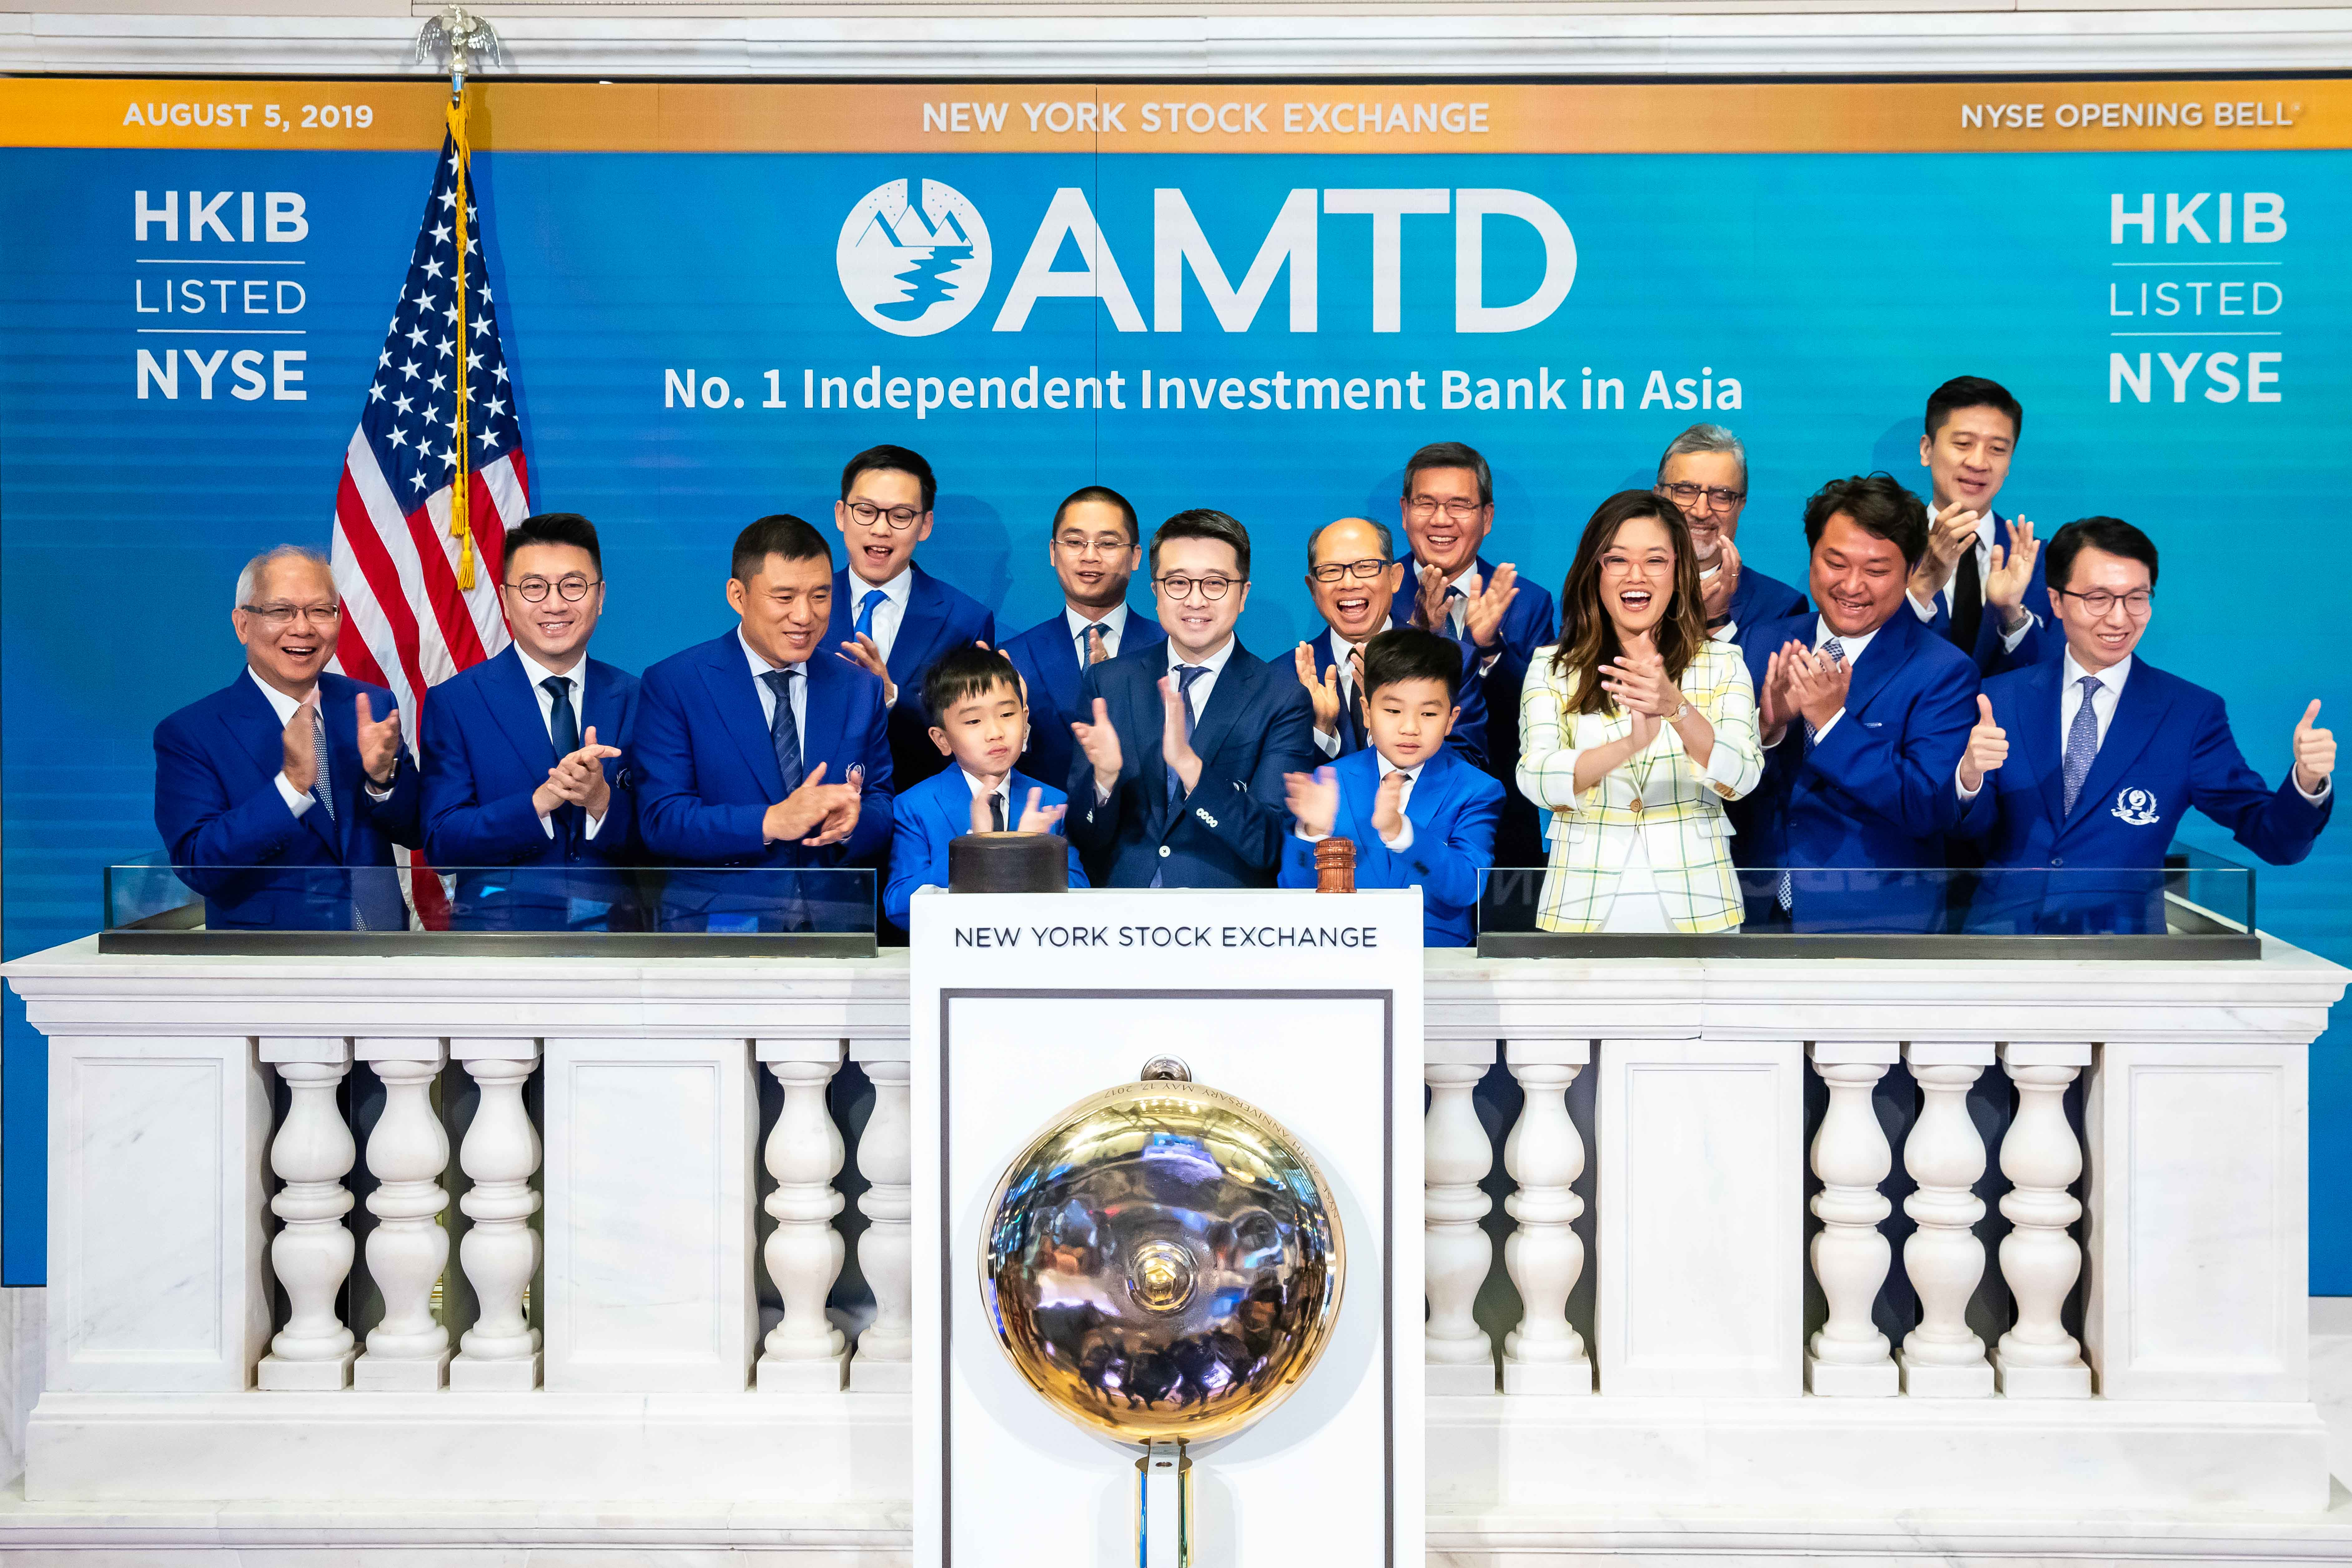 AMTD International (NYSE: HKIB) Successfully Lists on the NYSE